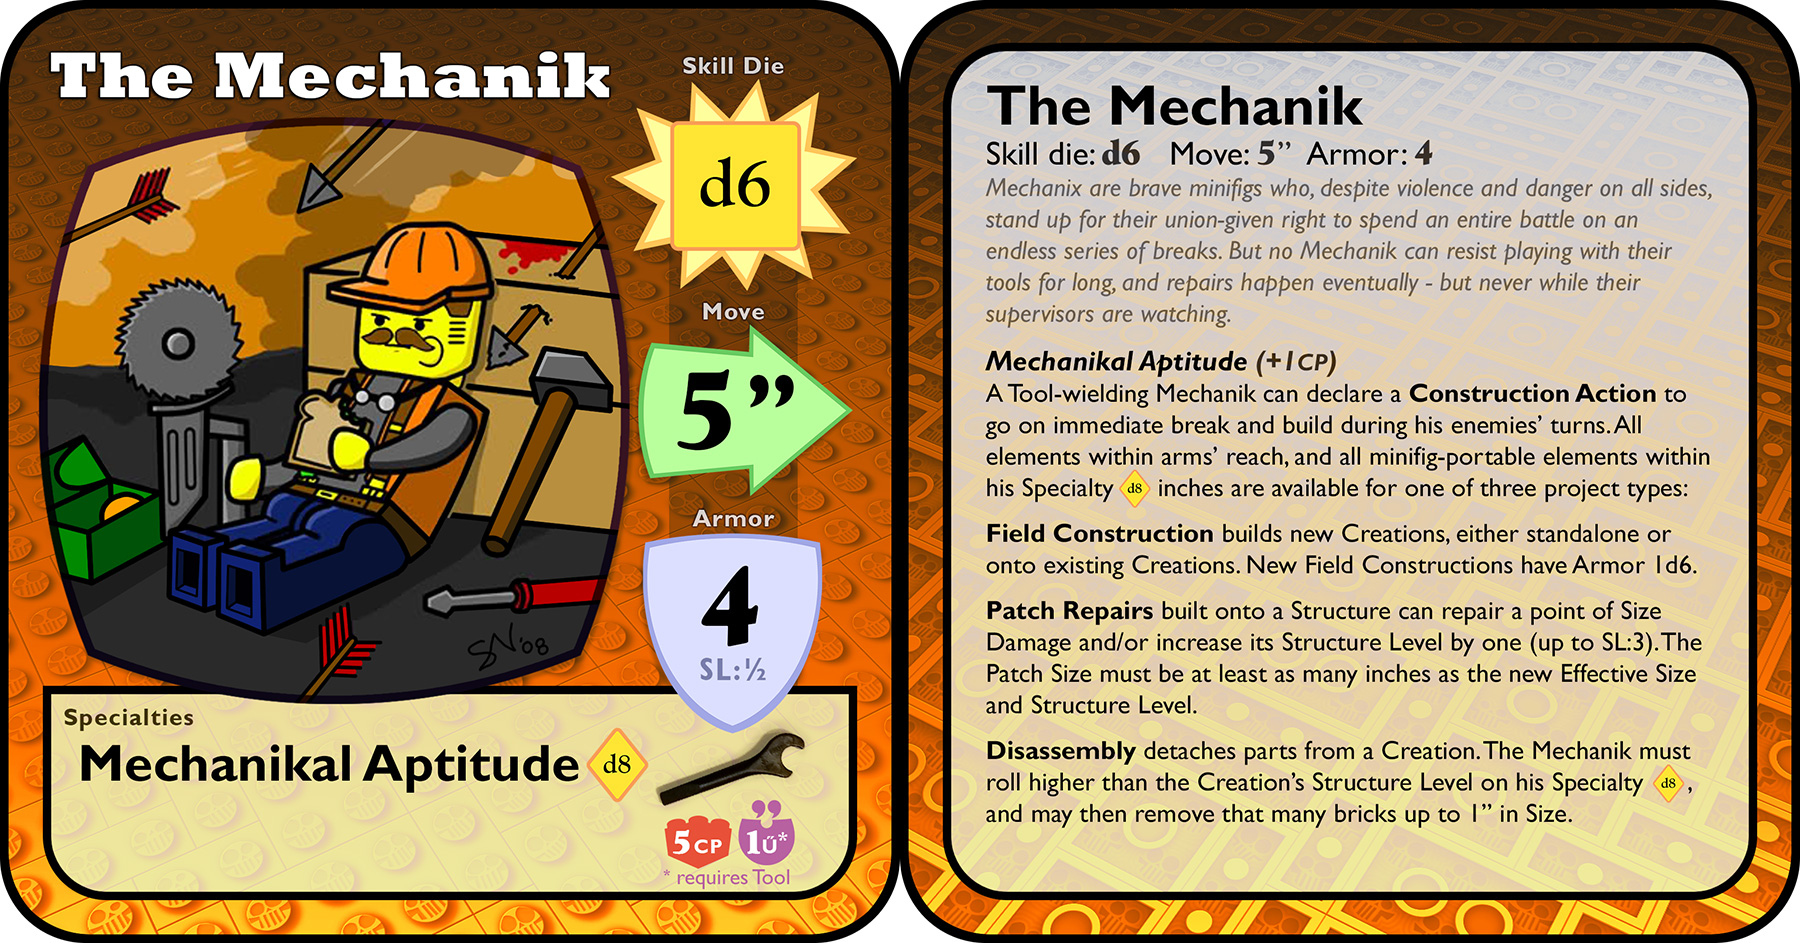 Mechanik card.jpg